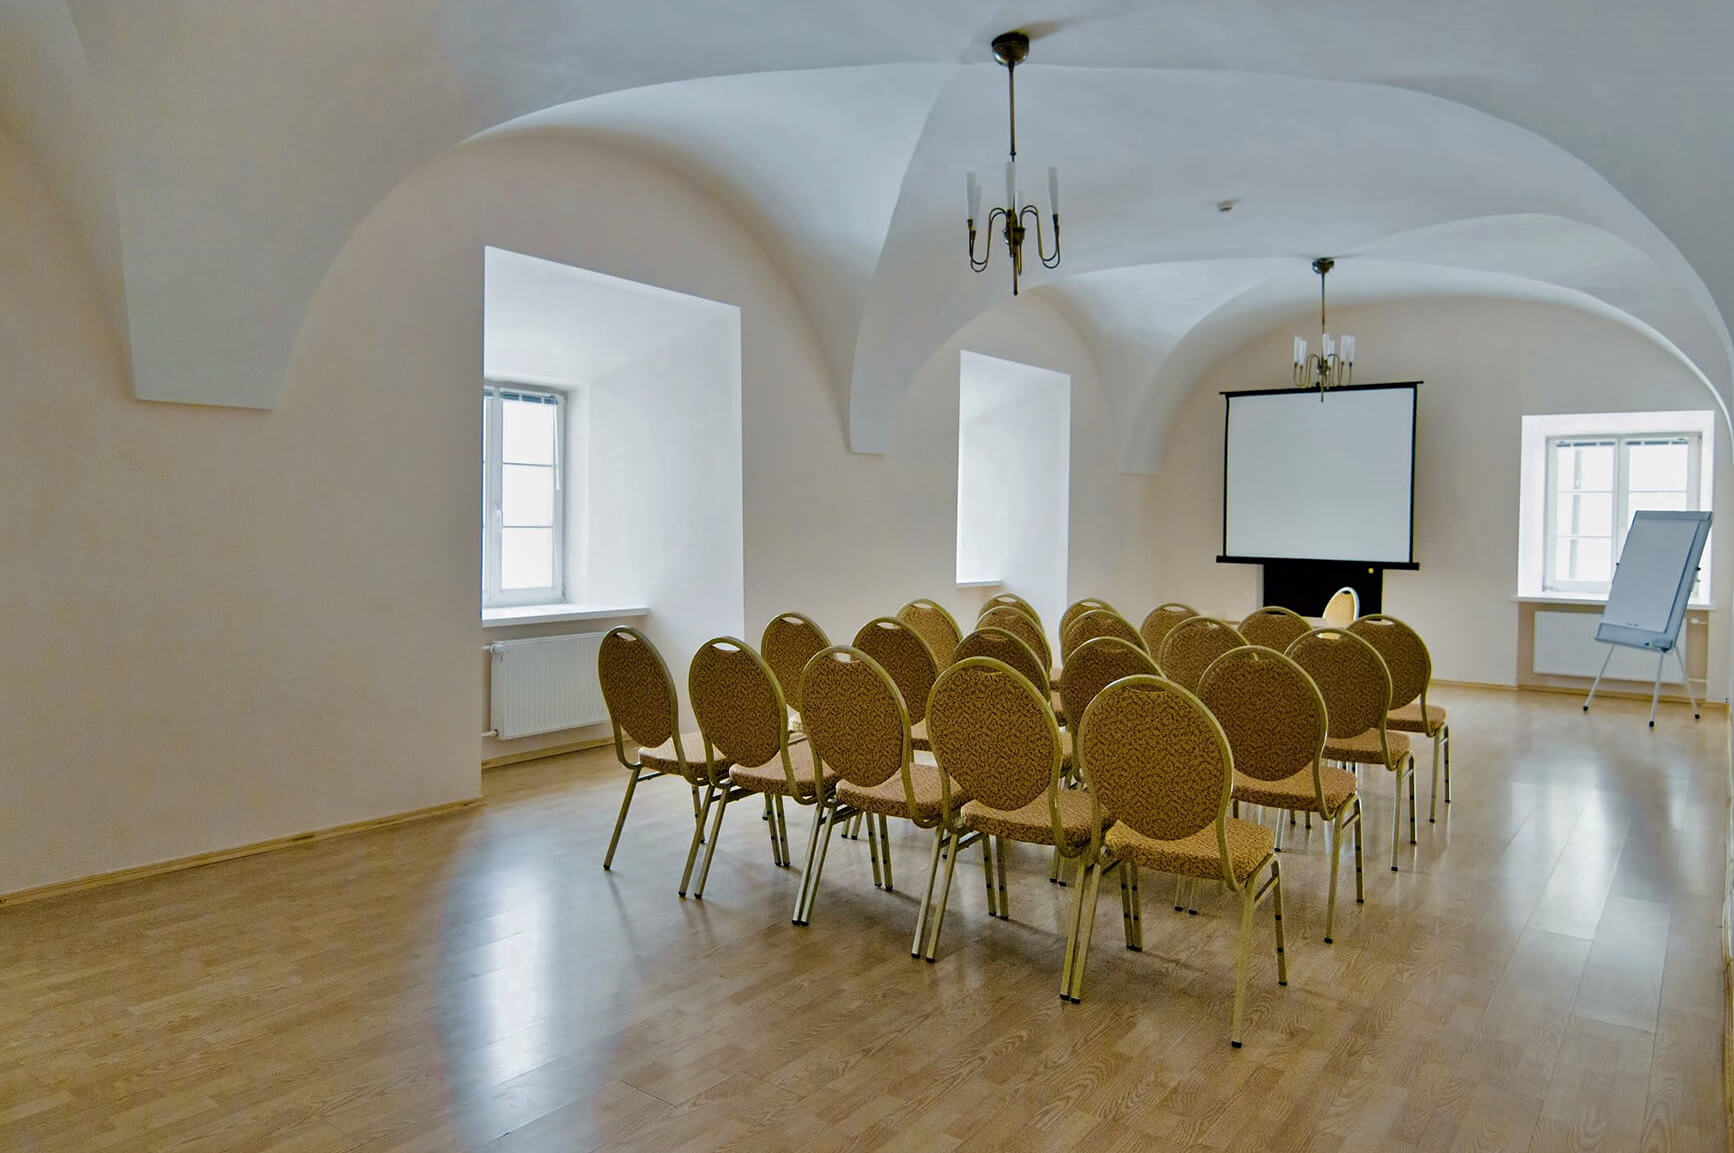 domus-maria-hall-meeting-rooms734x1153